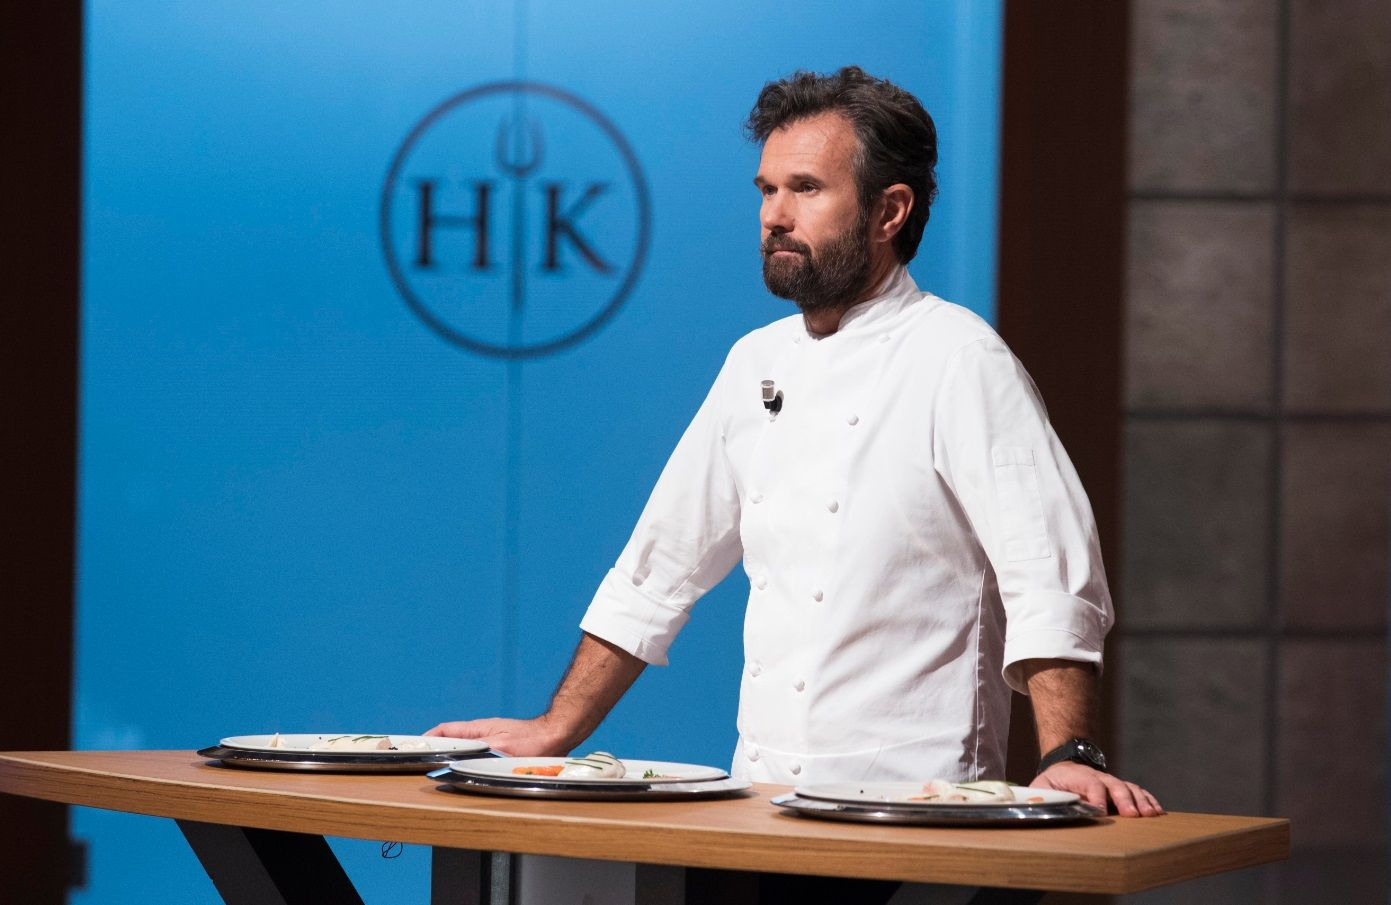 cracco hell's kitchen 4[606]